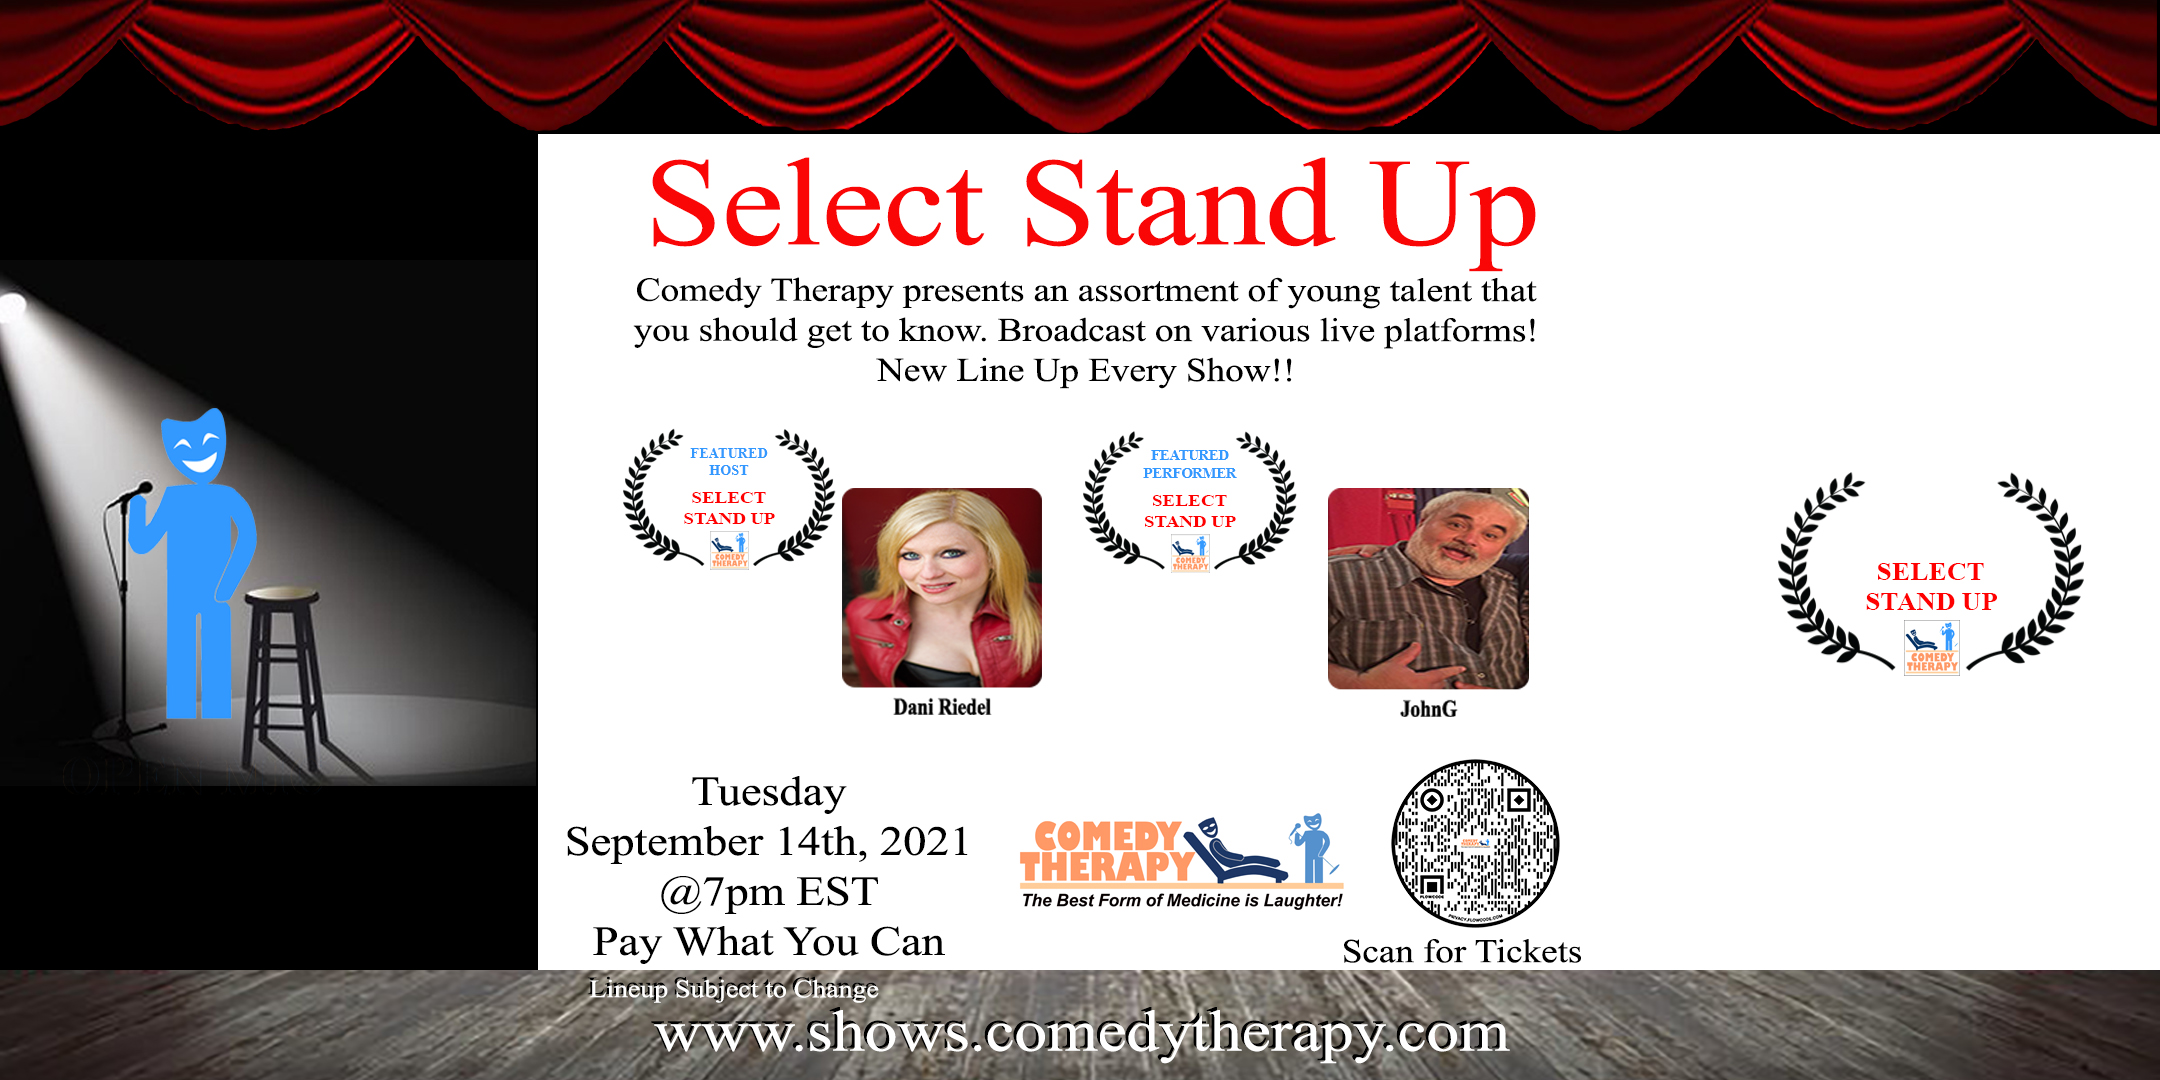 Select Stand Up Sept 14th